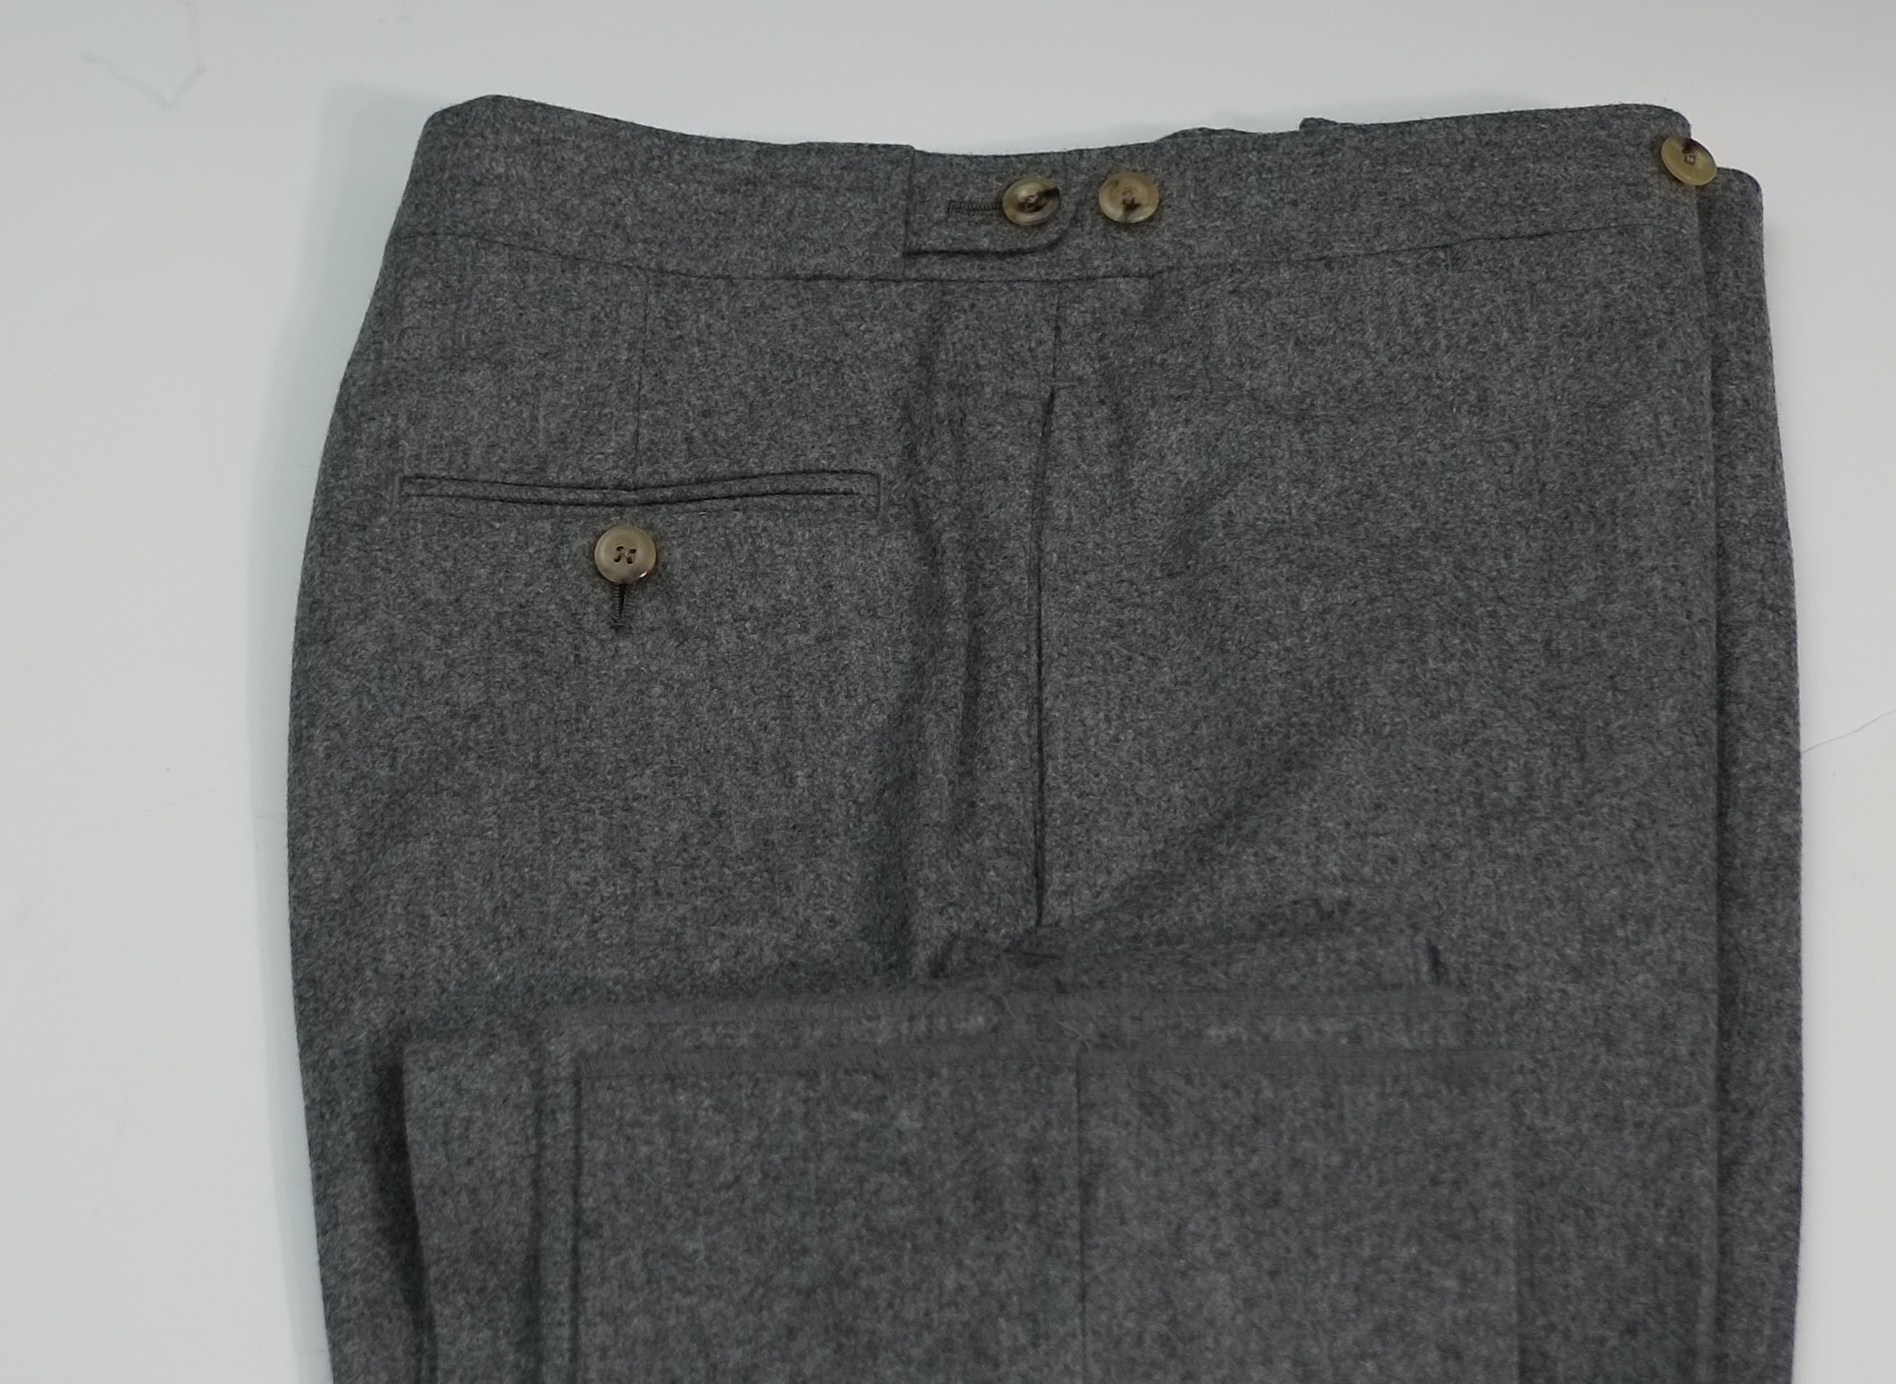 Panta Fall Winter Pants Online Trunk Show Sale Flannels